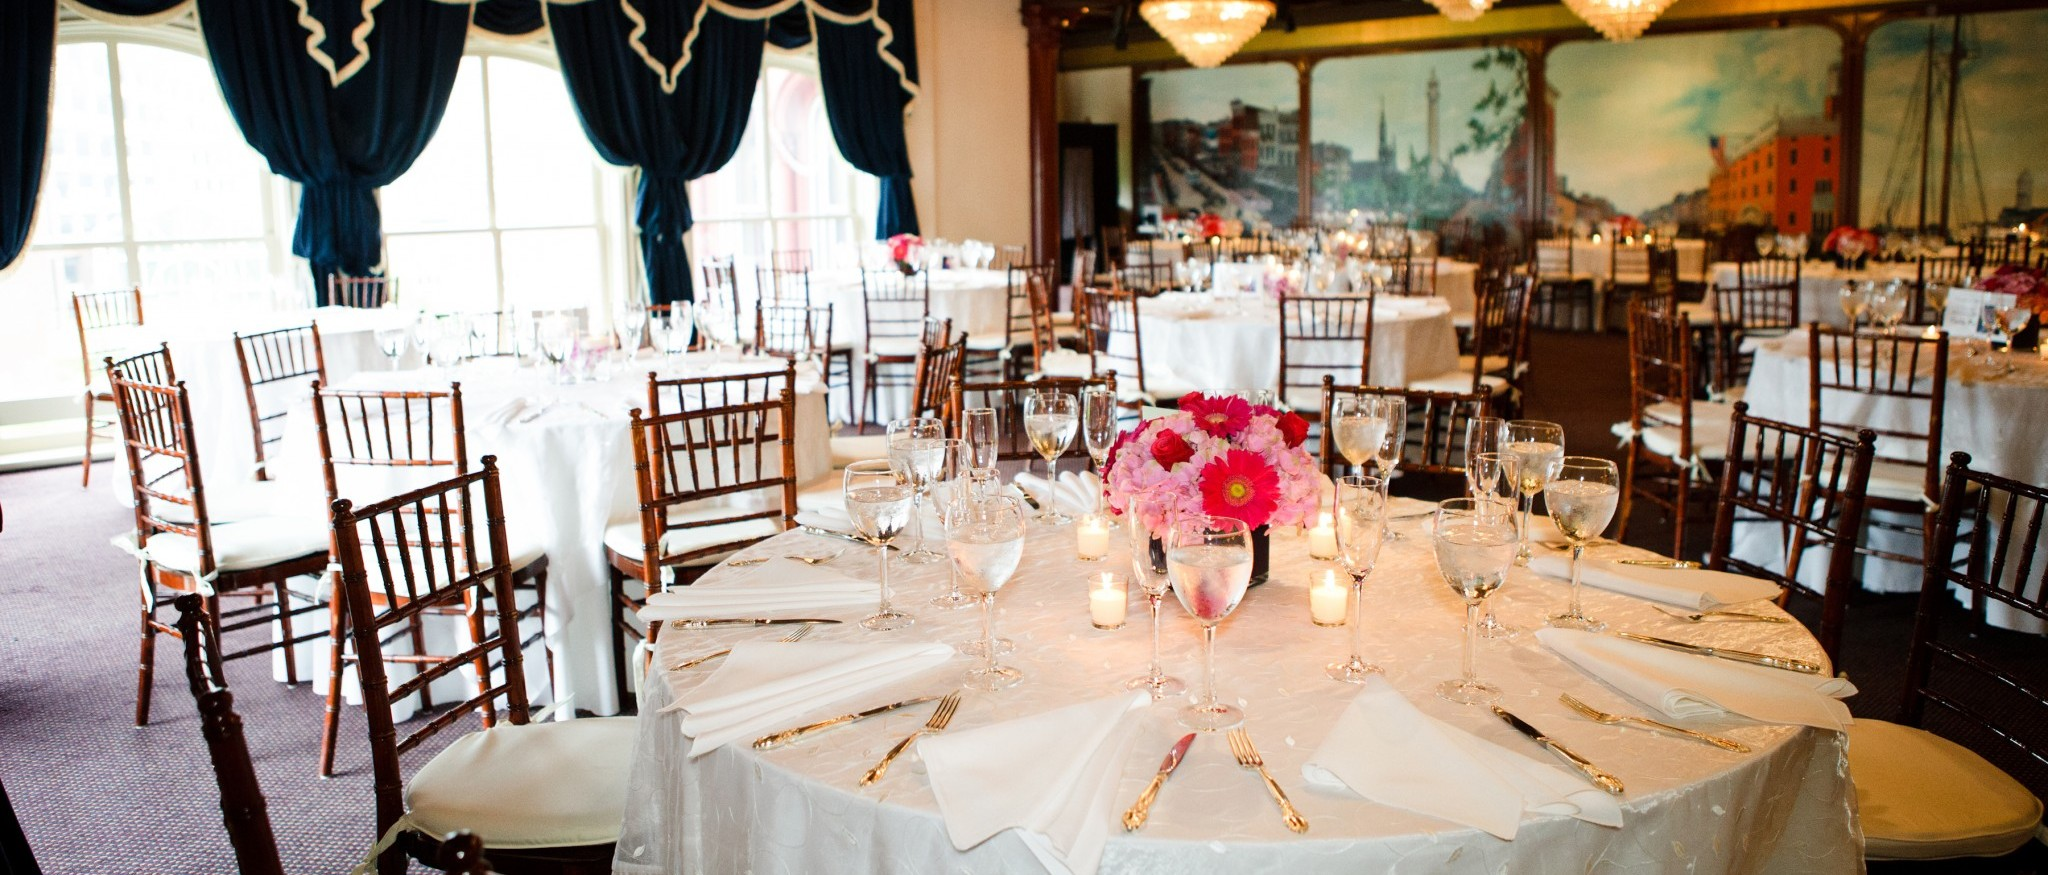 Wedding Reception Set-up in 1840s Ballroom